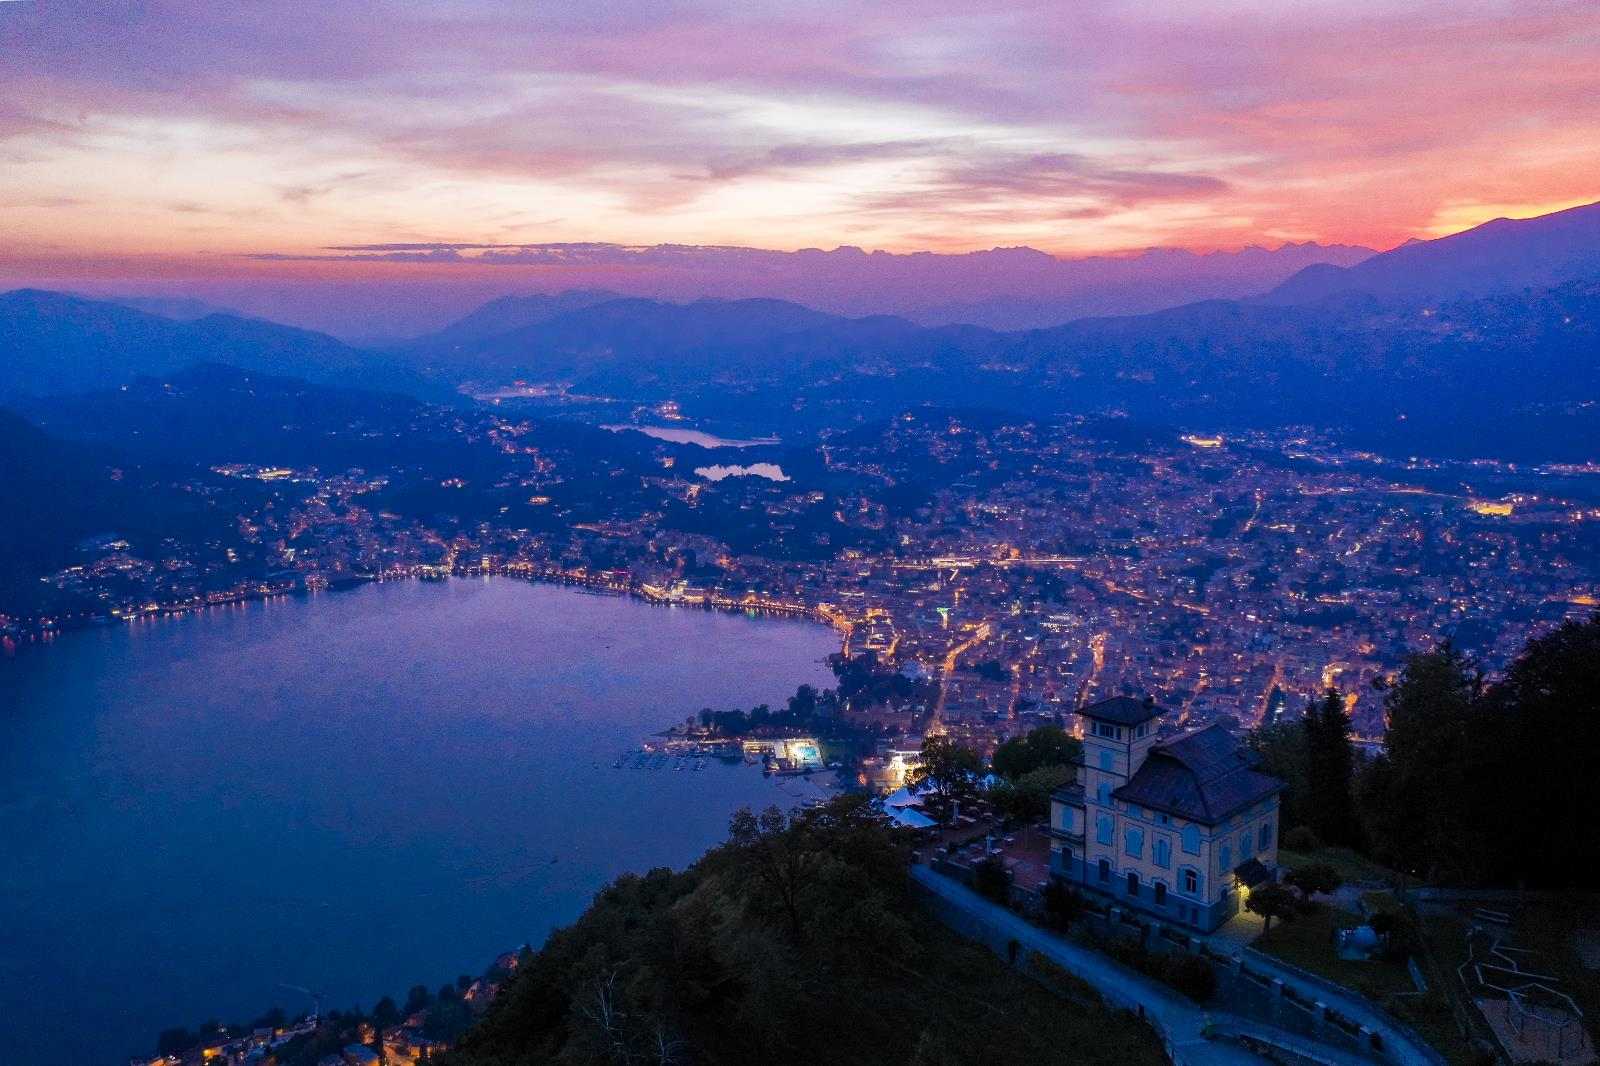 Clubbing and nightlife, View of Lugano by night